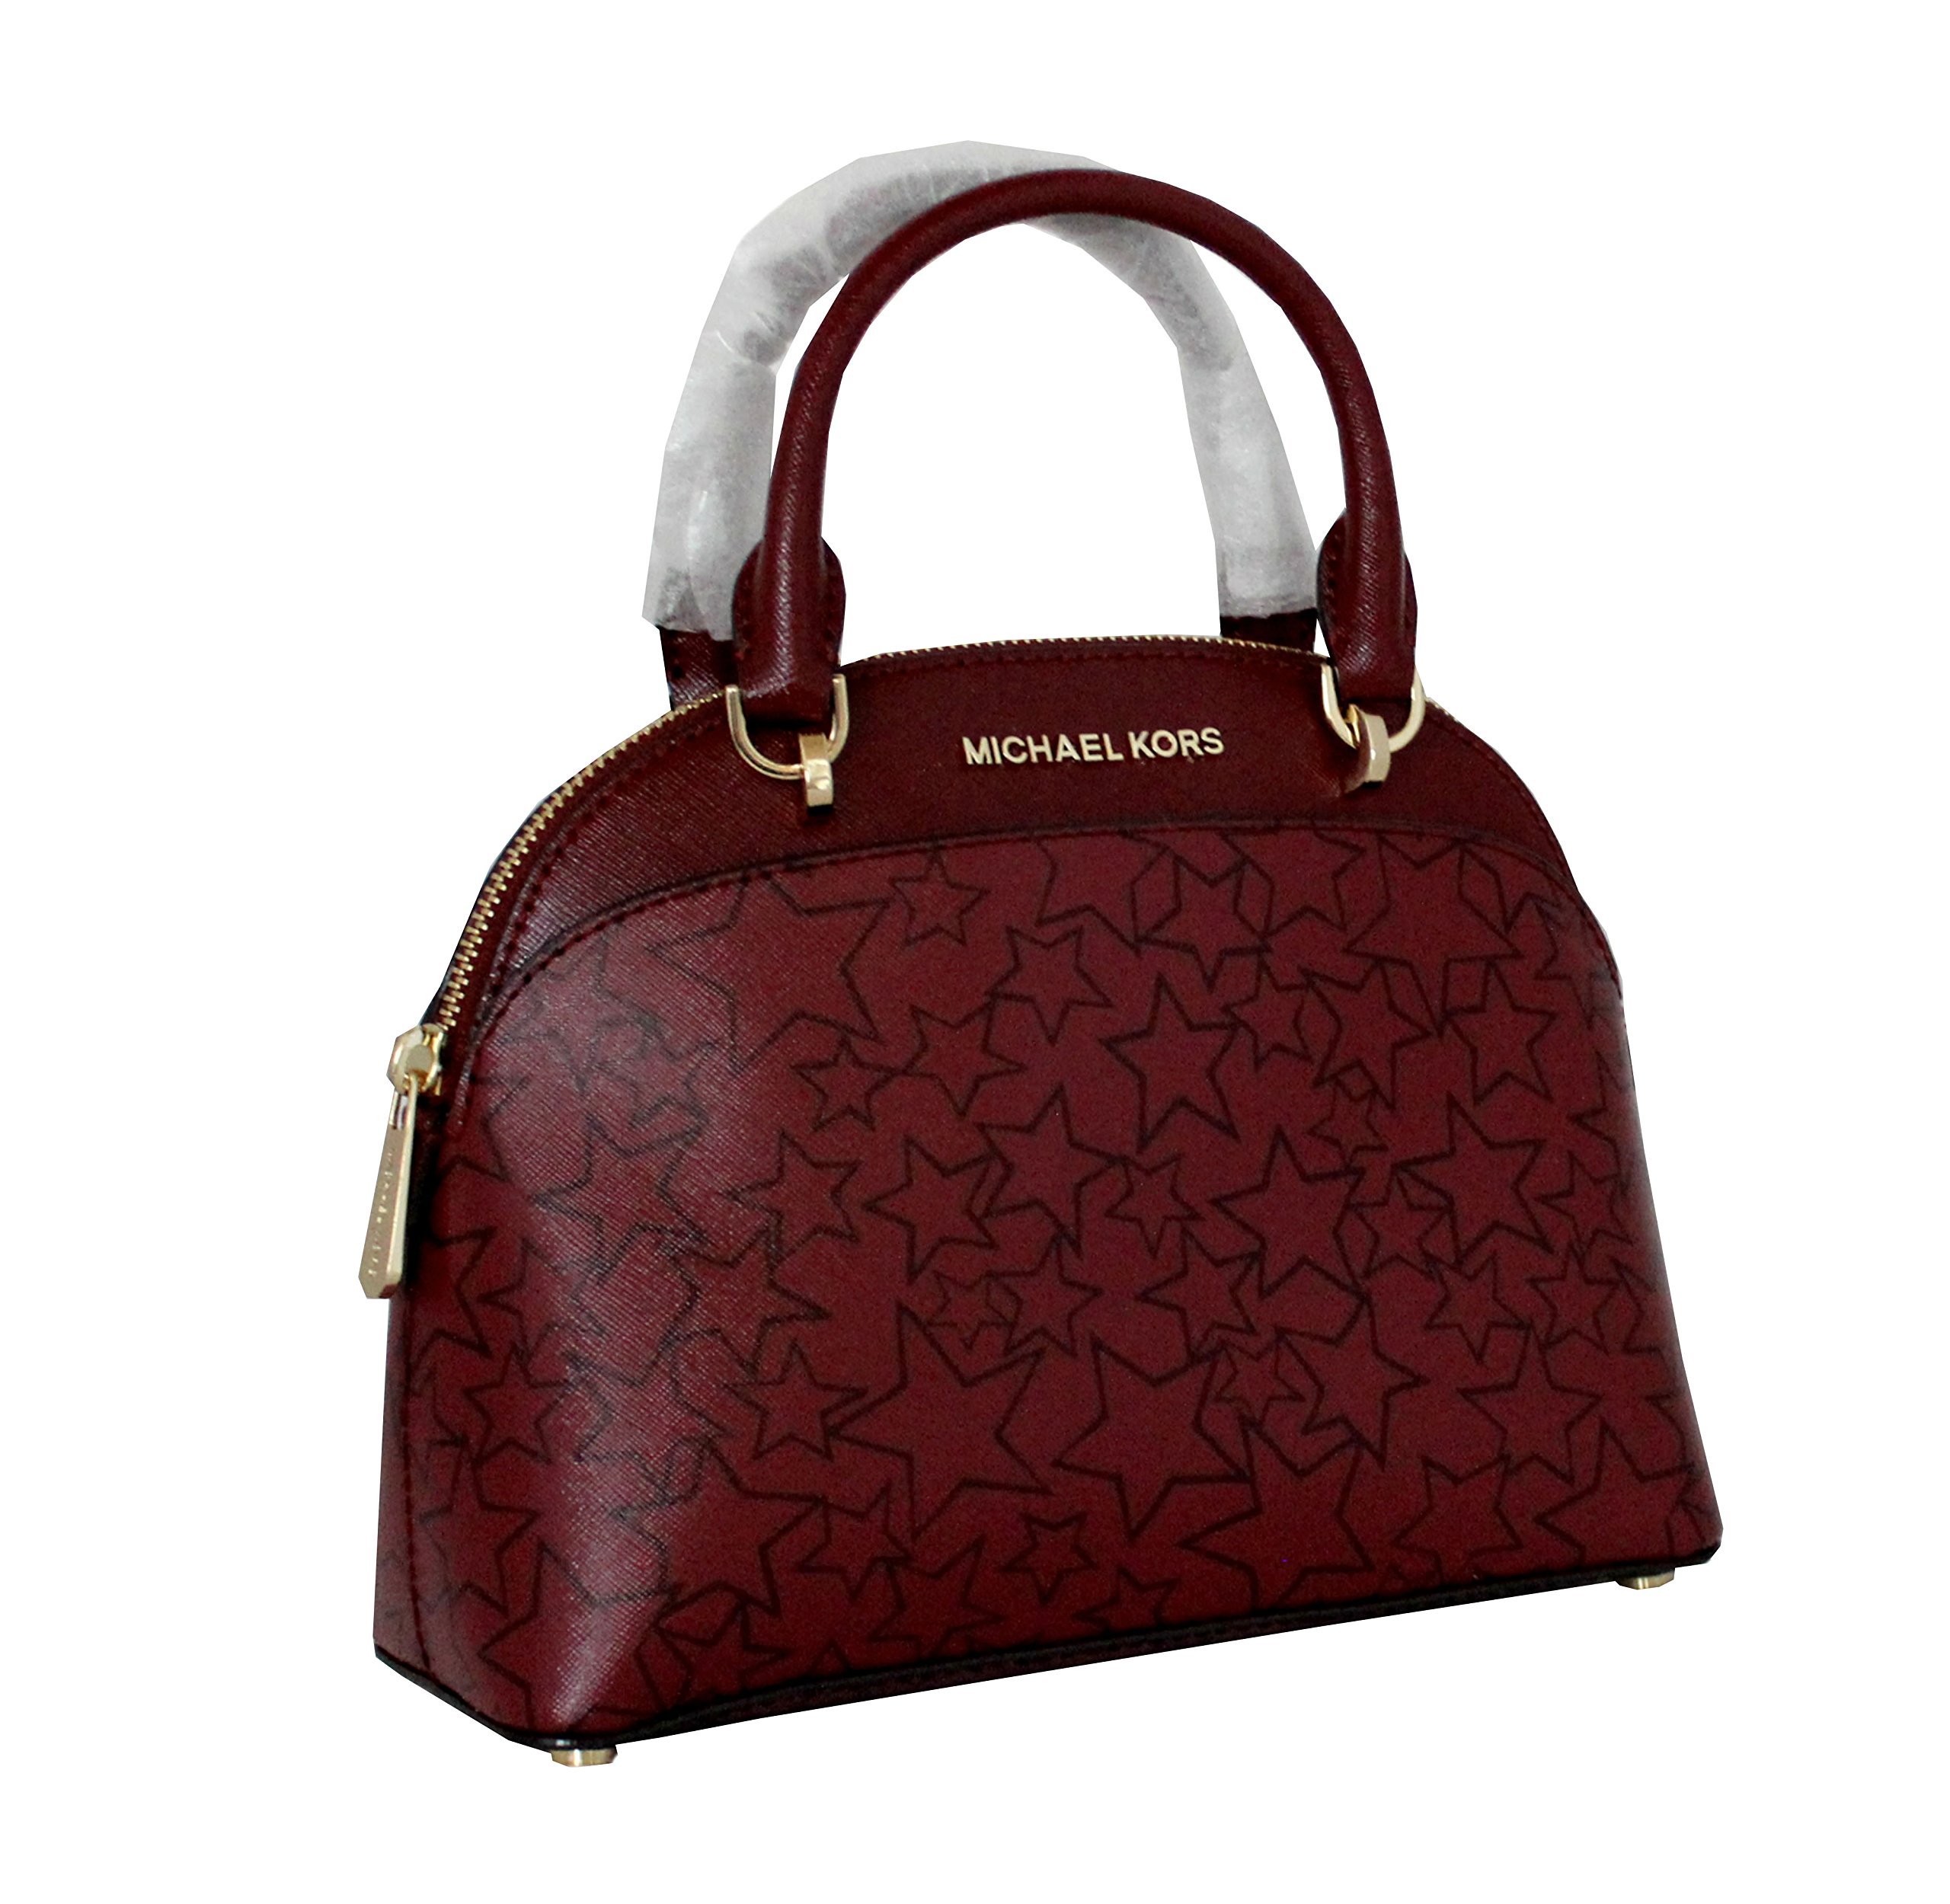 MICHAEL Michael Kors EMMY Women's Shoulder Handbag SMALL DOME SATCHEL (Mulbry/plum) by MICHAEL Michael Kors